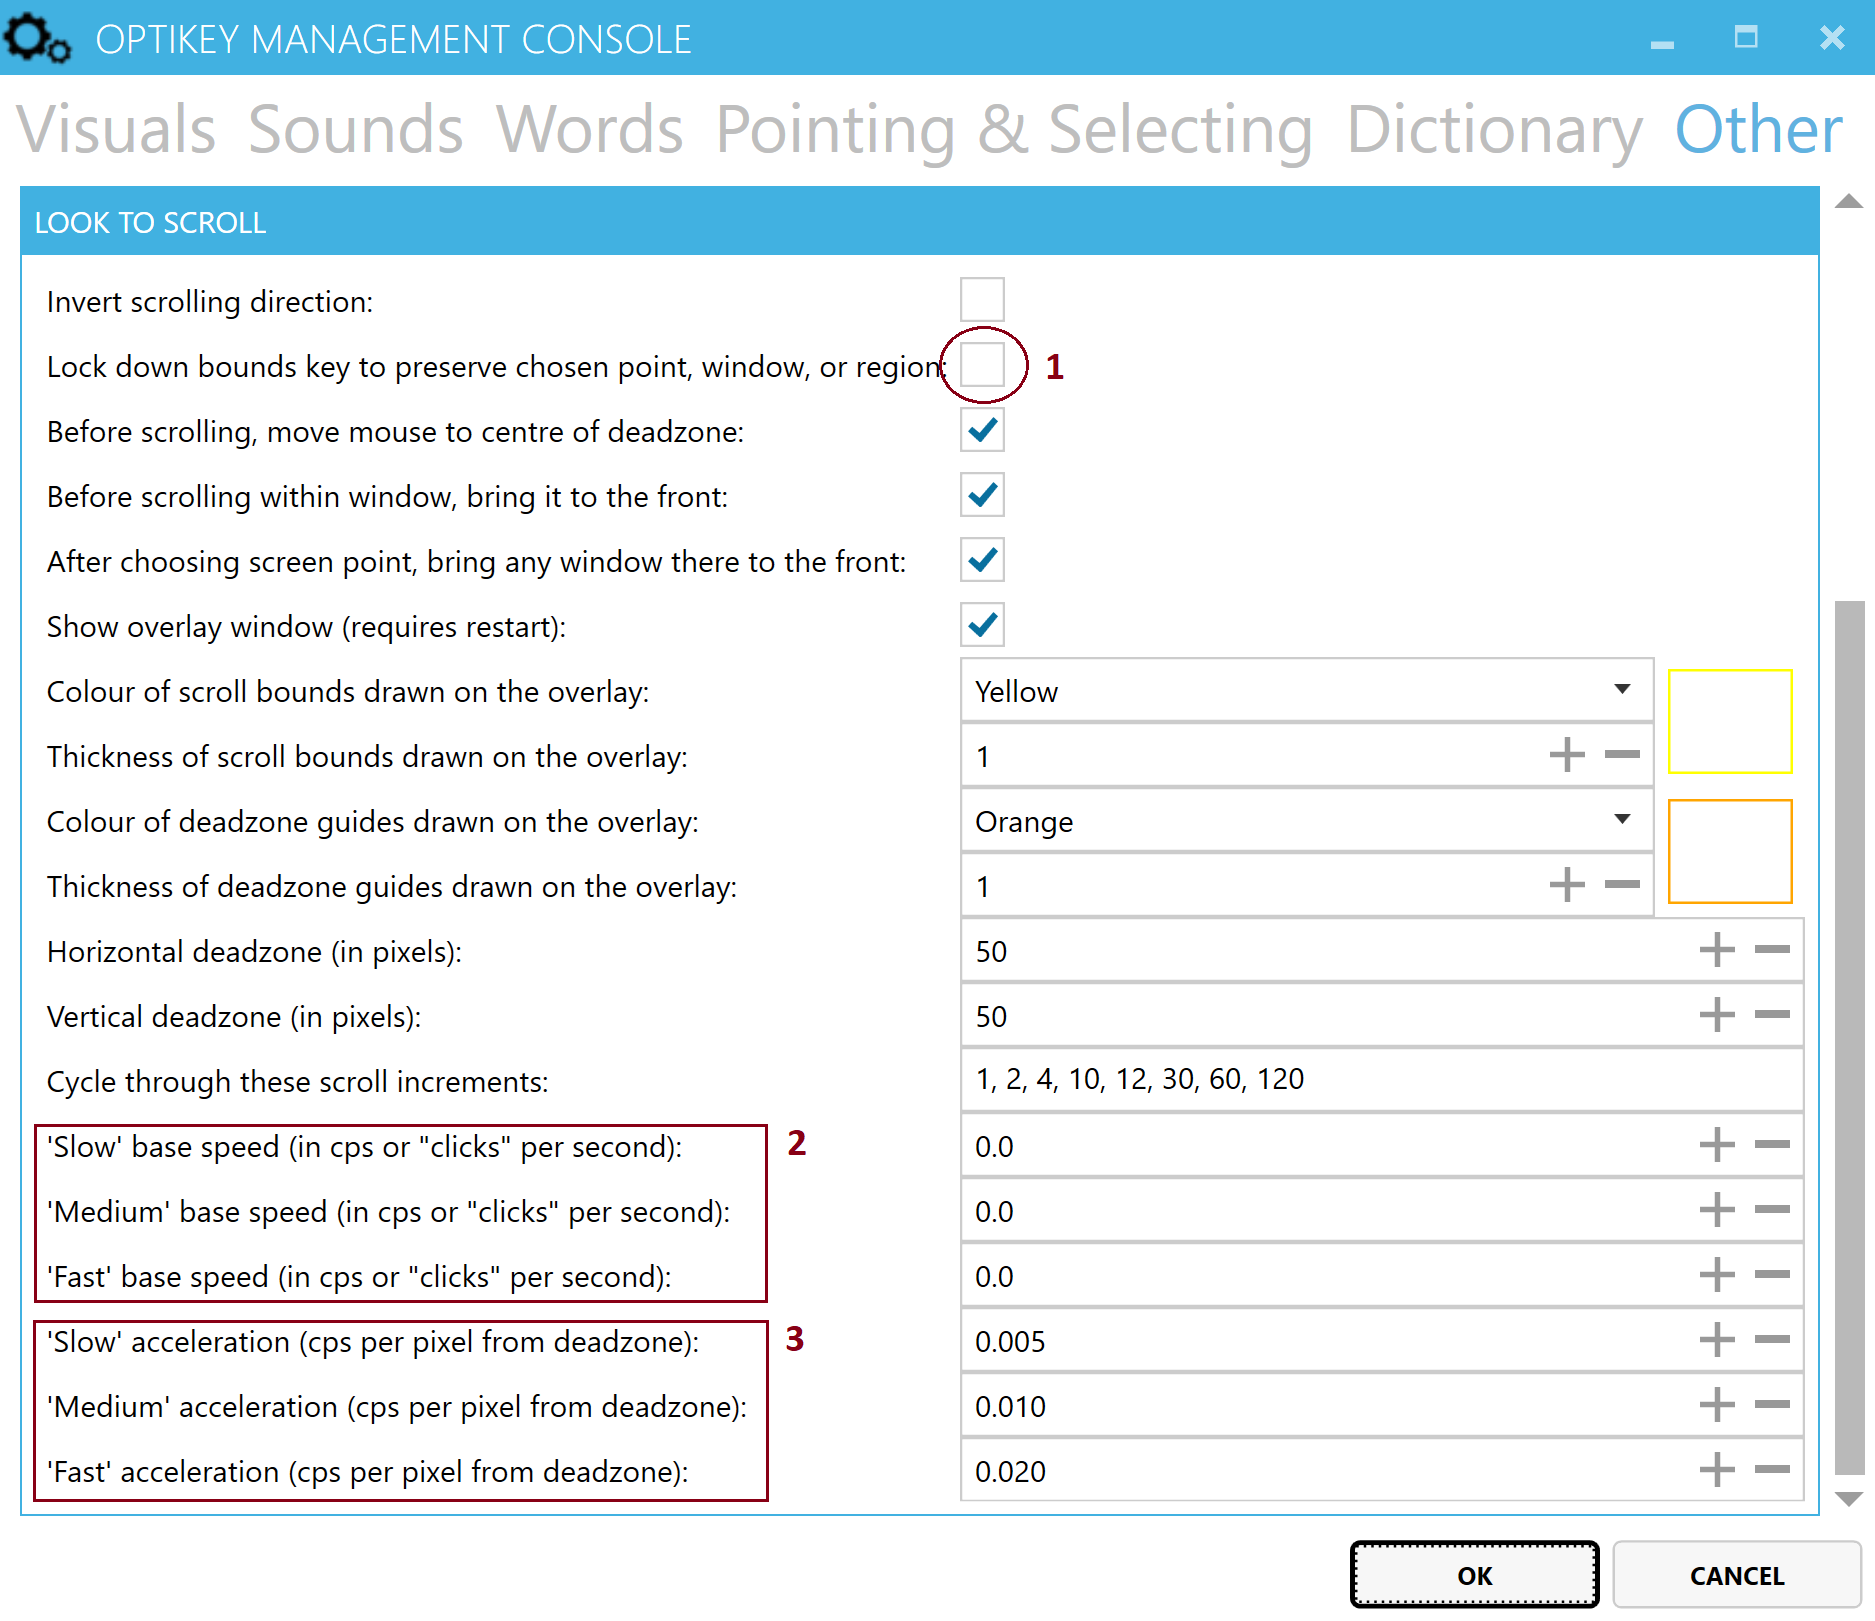 Screenshot of the look to scroll settings in the Management Console